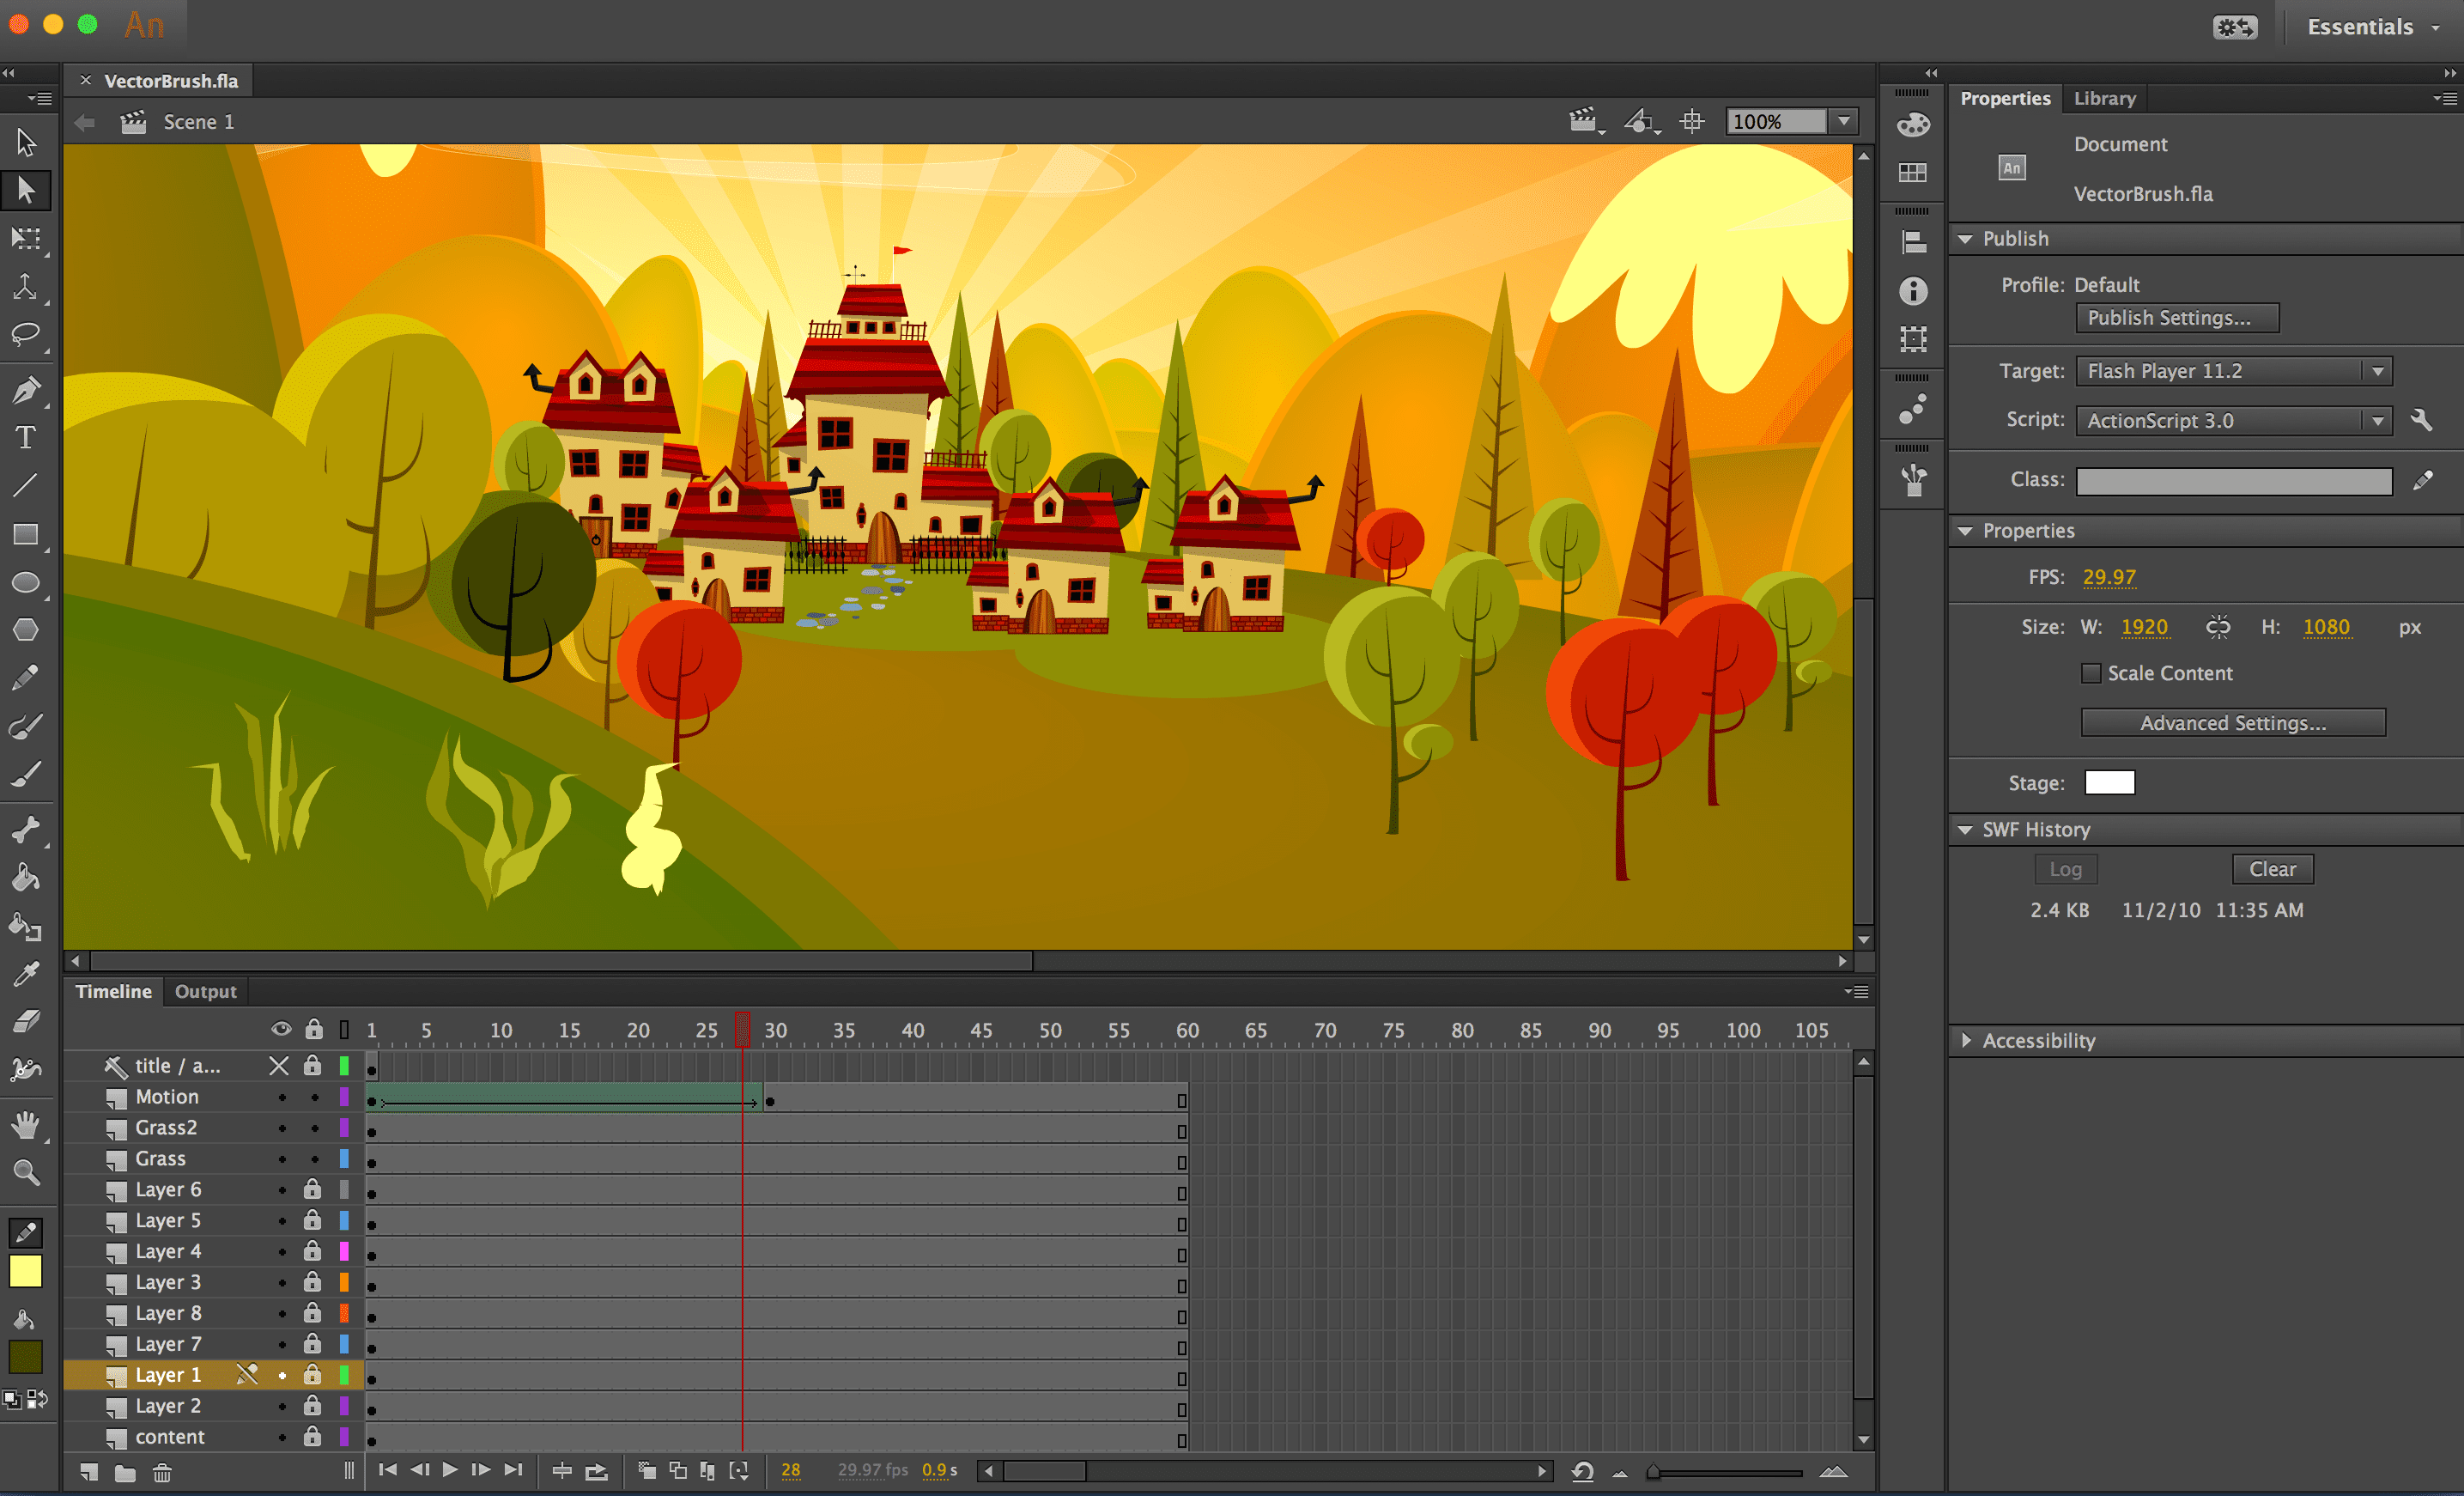 Find Out How to Use the Vector Brushes in Adobe Animate CC